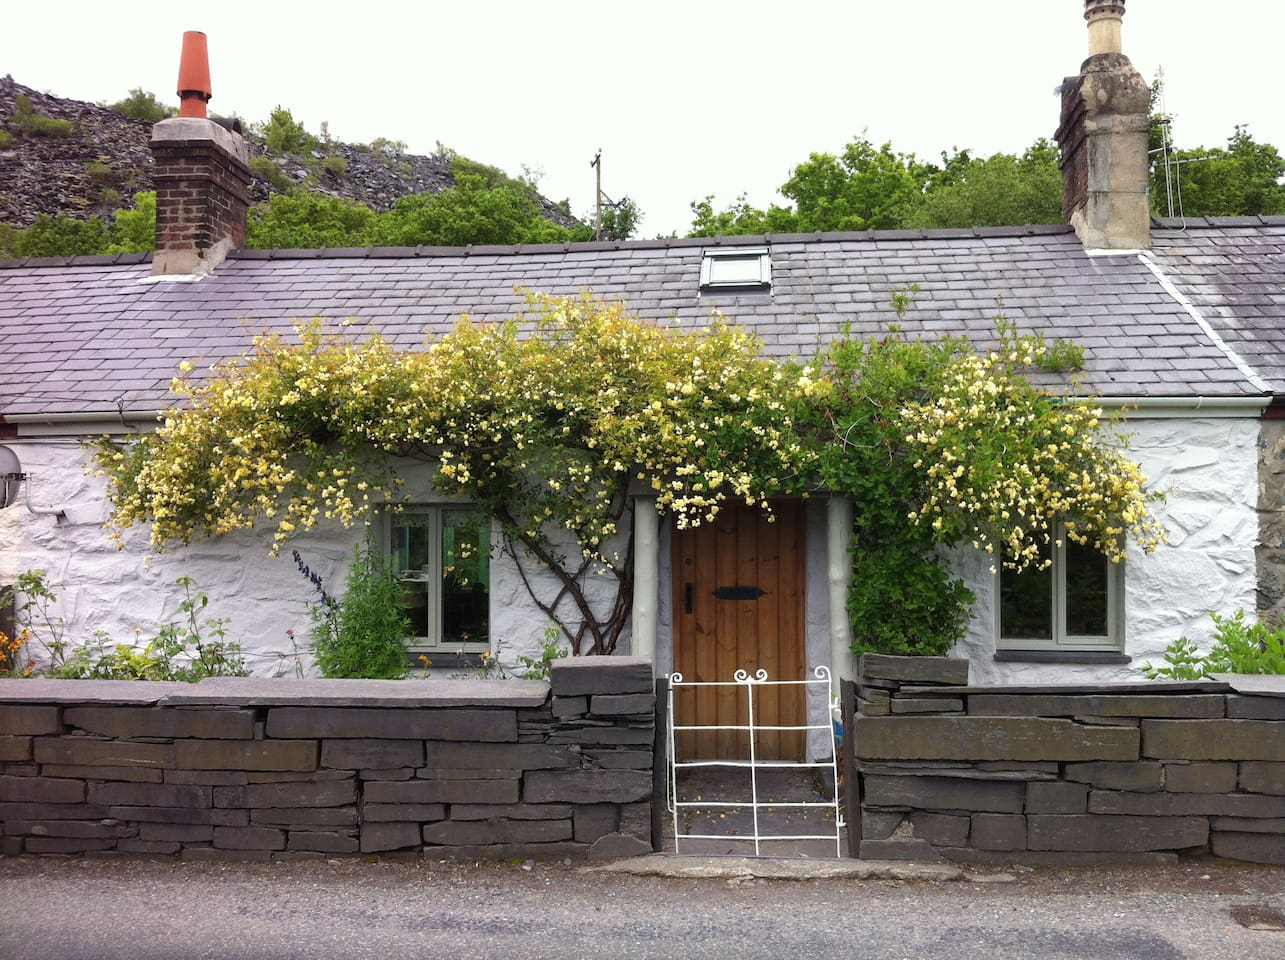 Traditional quarrymans cottage. Full of charm and character